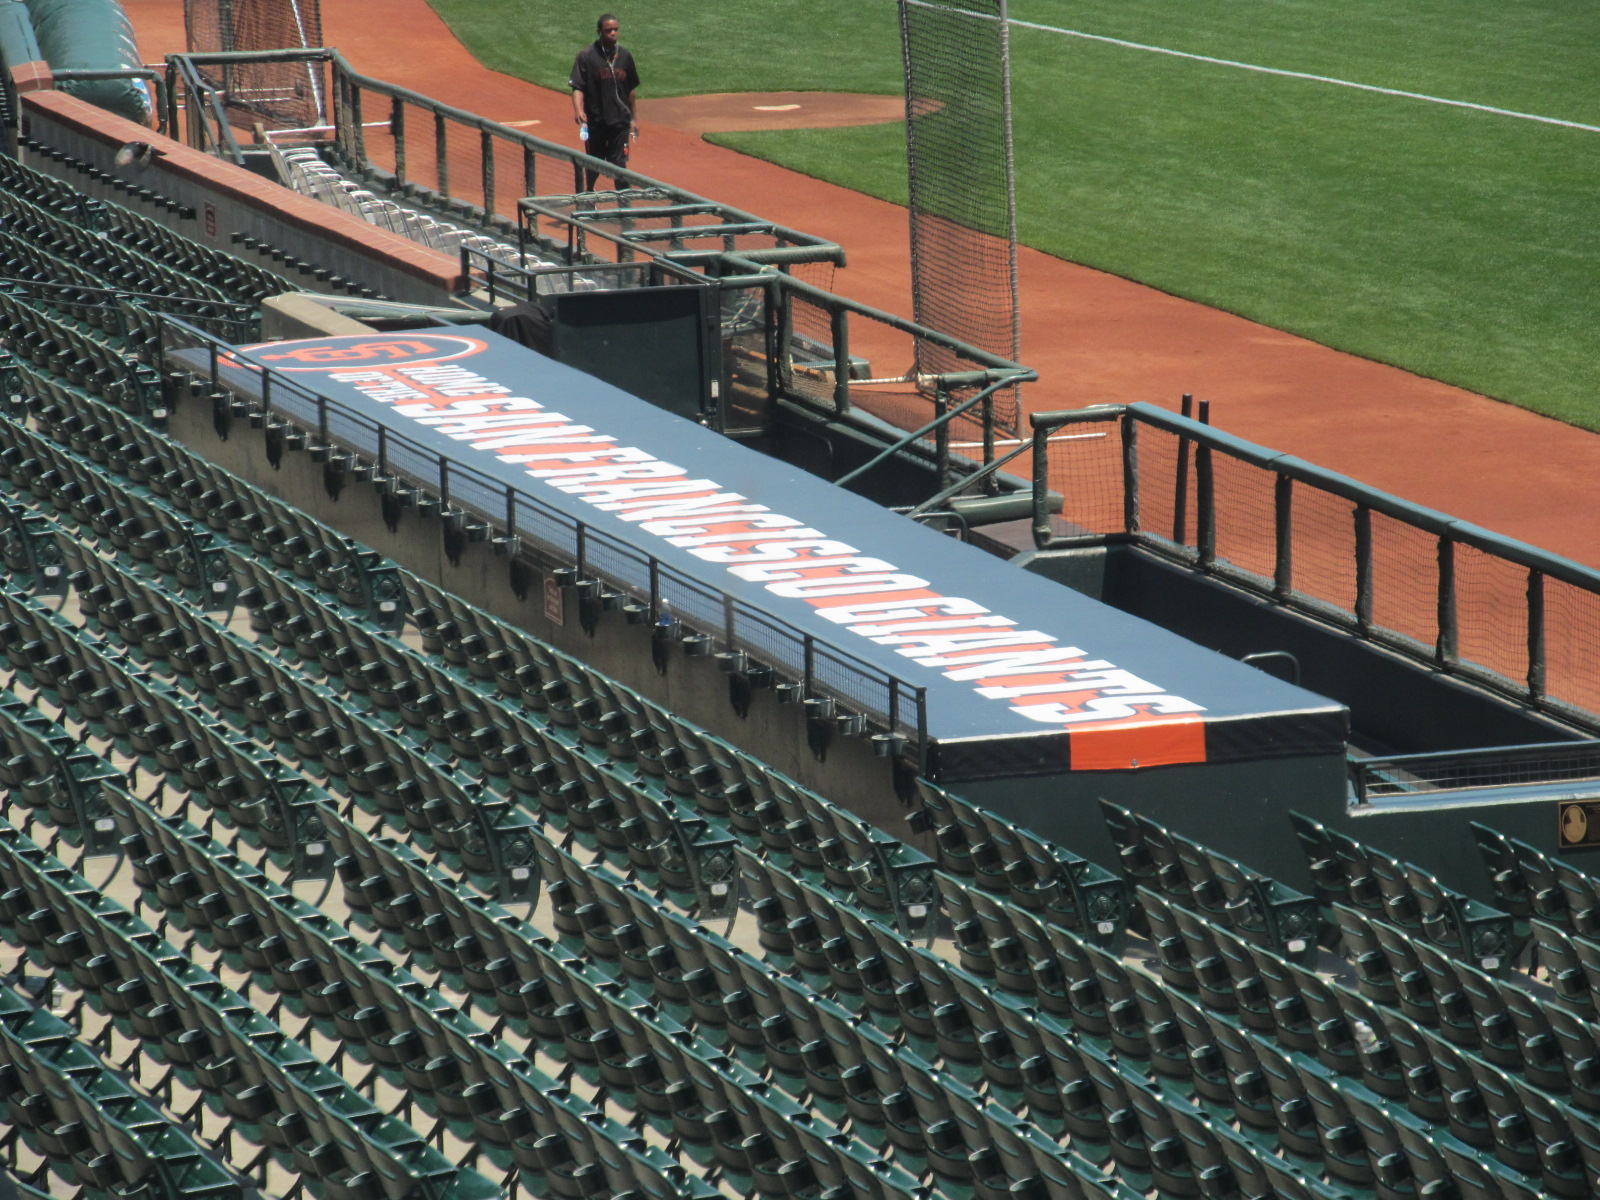 Giants Dugout. View from the pressbox